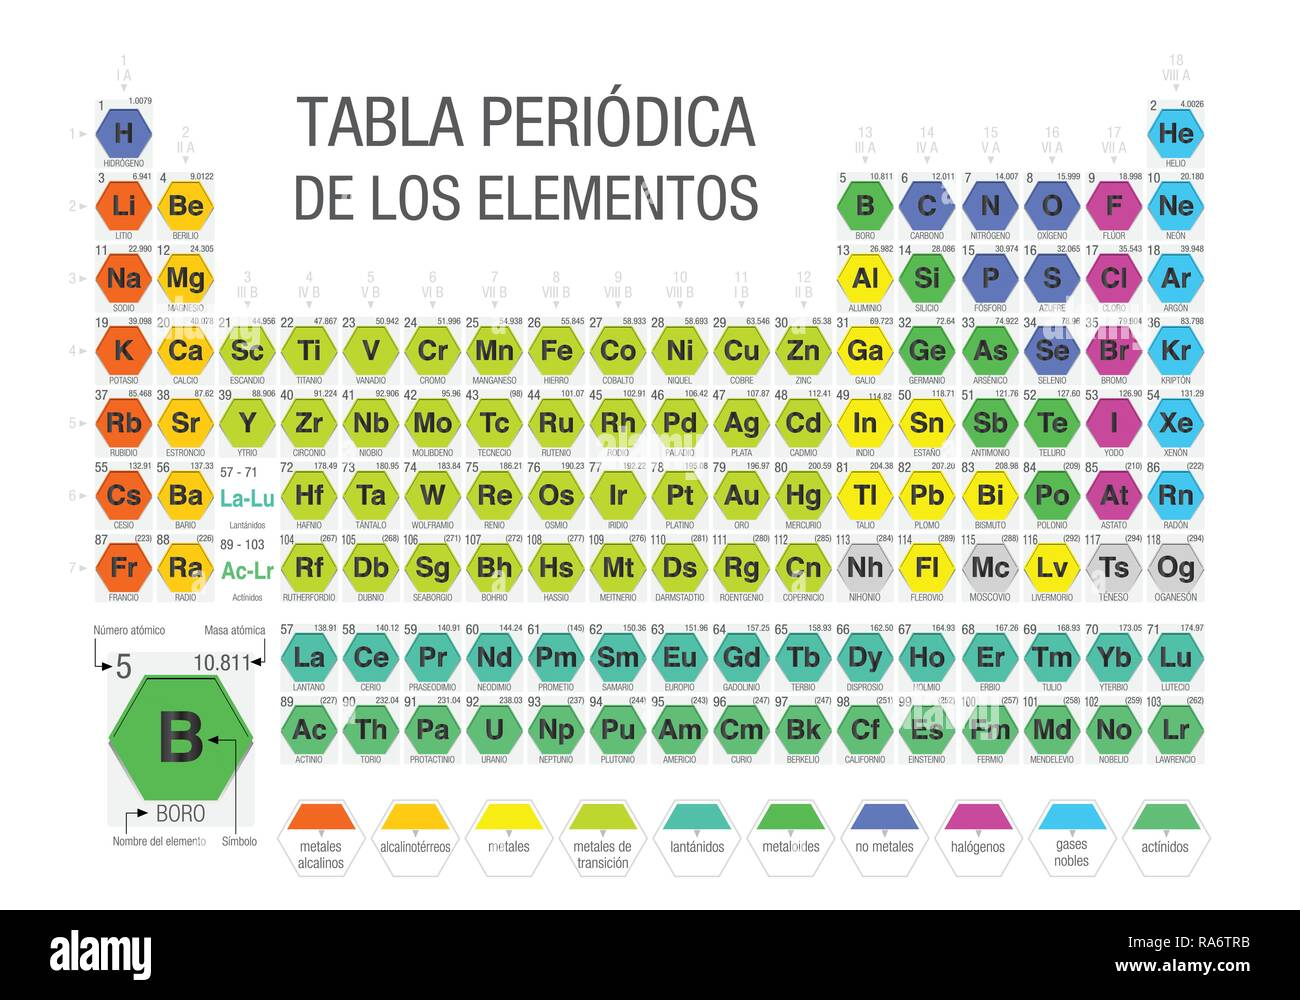 tabla periodica de los elementos periodic table of the elements in spanish language formed